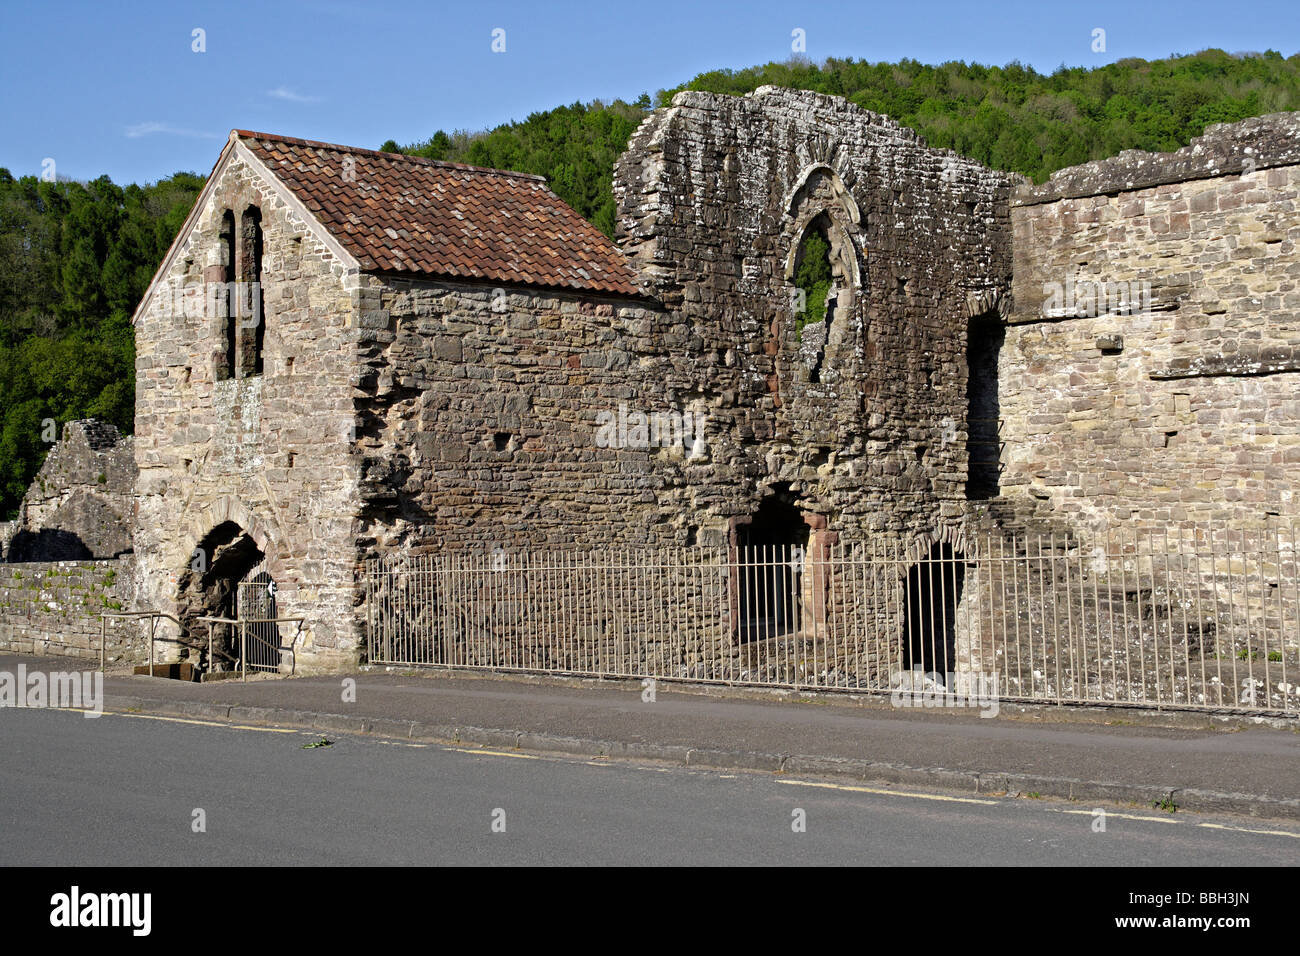 Tintern Abbey, in the Wye Valley Monmouthshire Wales - Stock Image